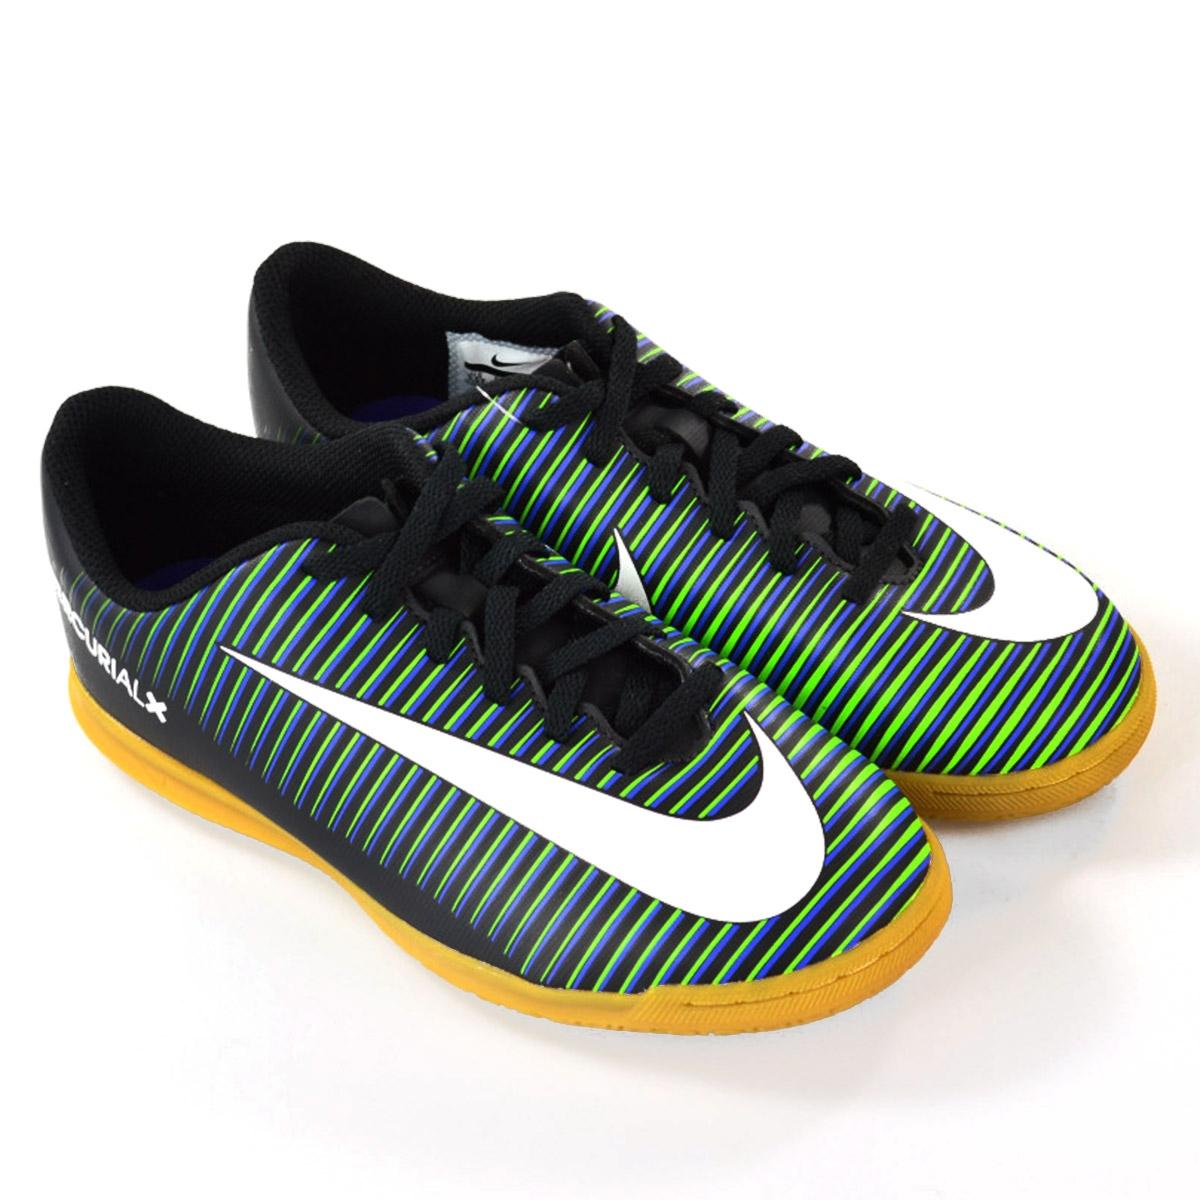 4a918f6e98 ... where to buy chuteira de futsal nike mercurialx vortex 3 ic nike preto  branco azul r